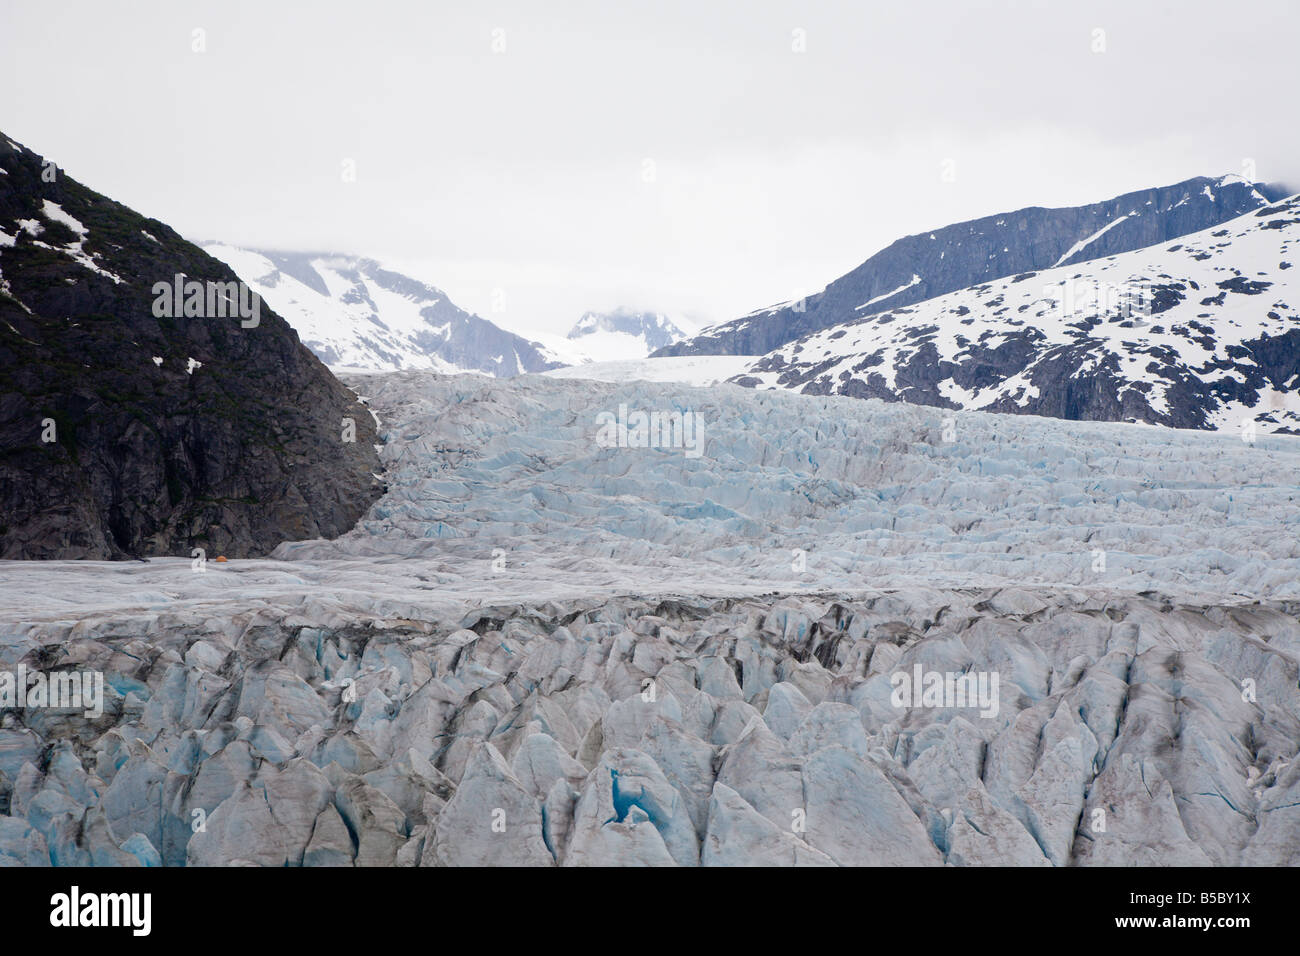 Close up view of ice shapes on the top of Mendenhall Glacier near Juneau, Alaska - Stock Image